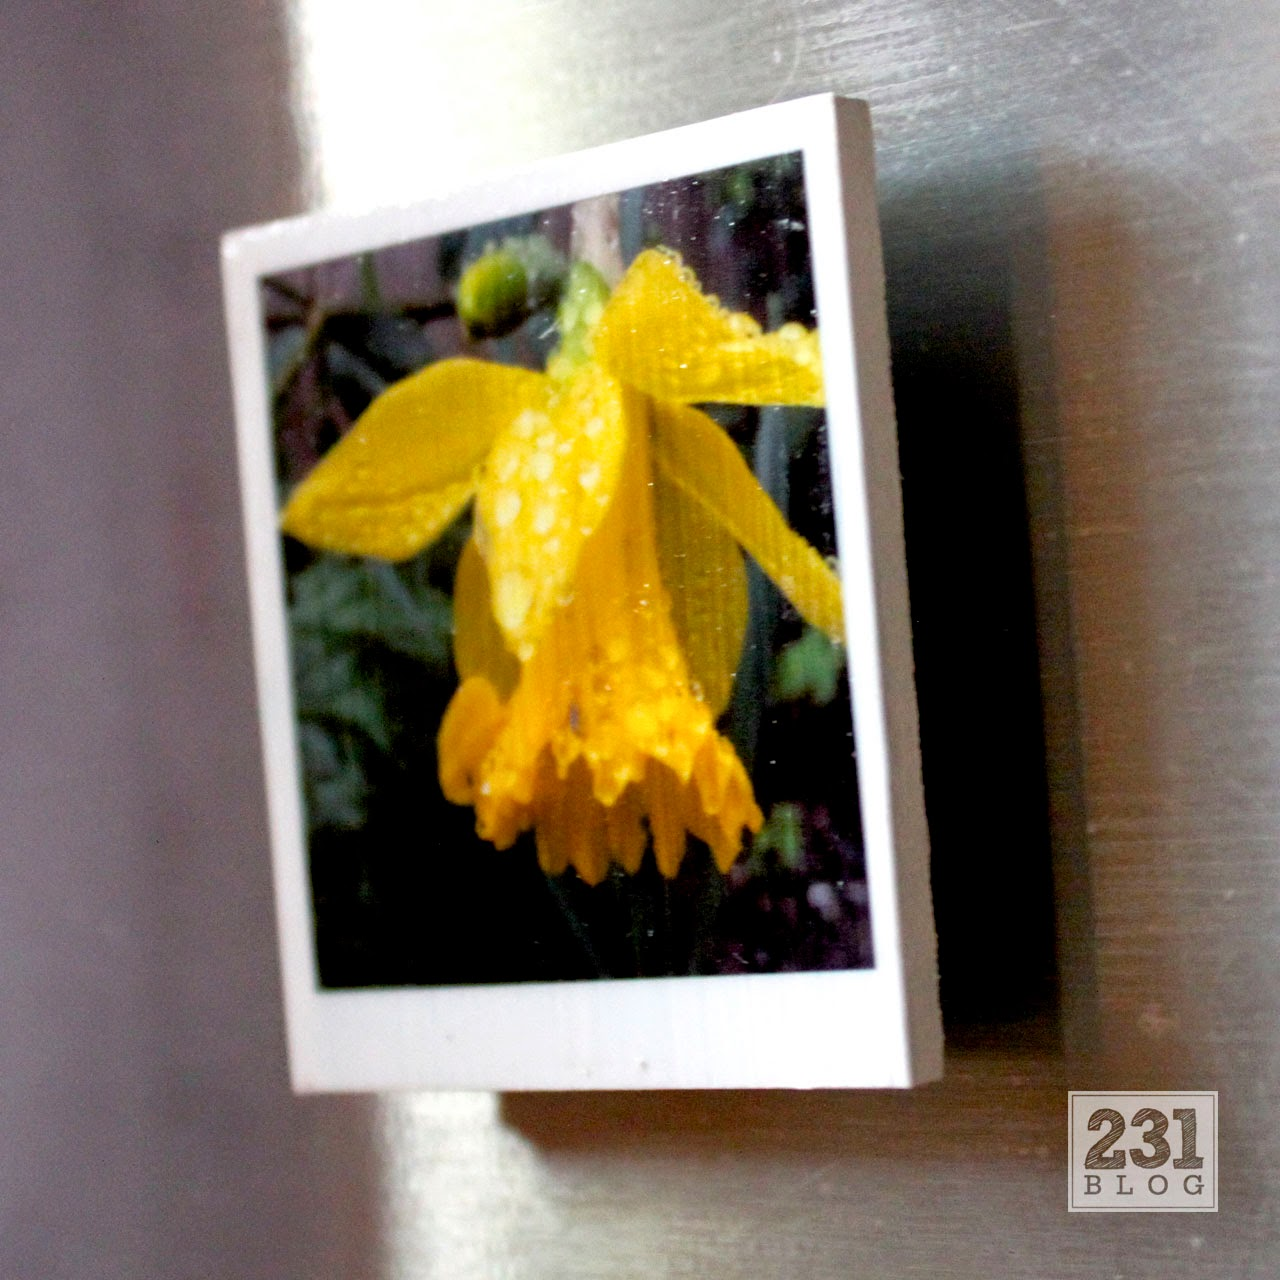 CIY Polaroid Style Magnets using Instagram Photos